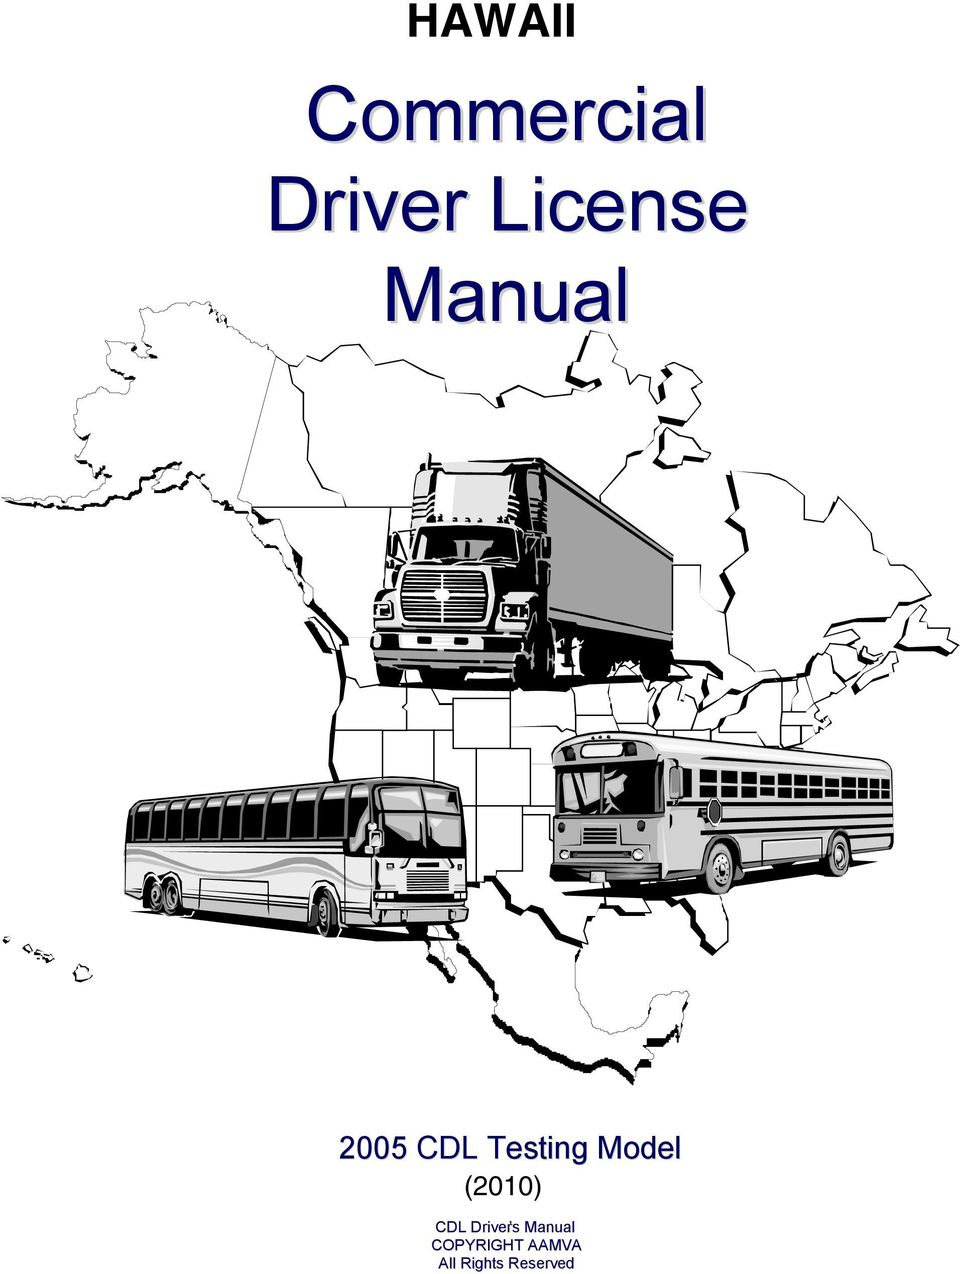 Commercial Driver License Manual